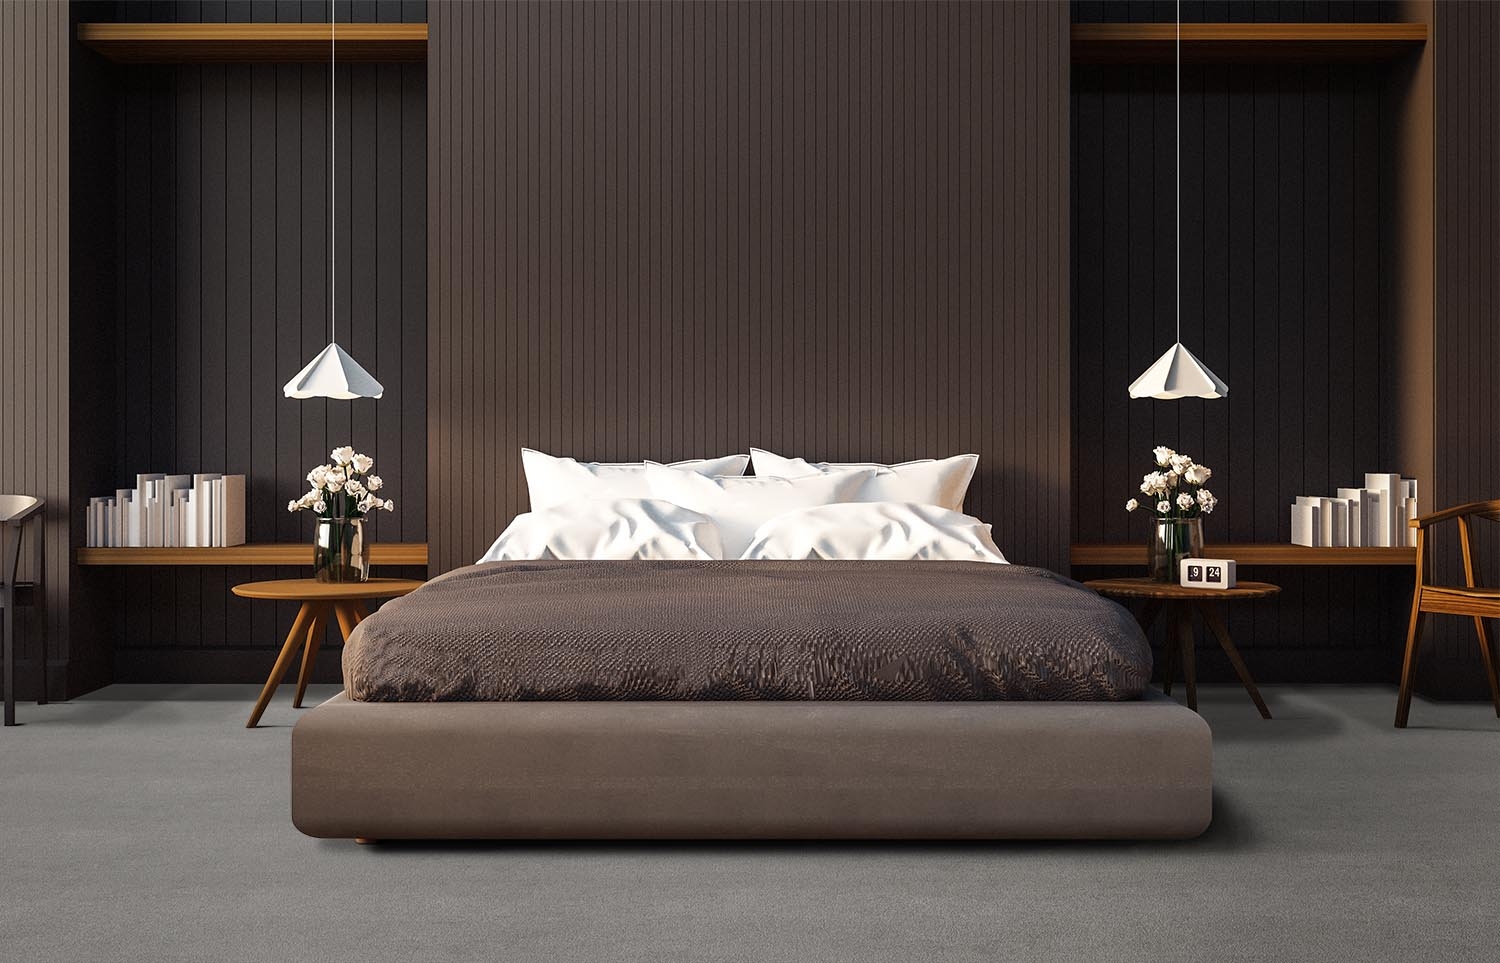 Softology - S201 - Ash contemporary bedroom